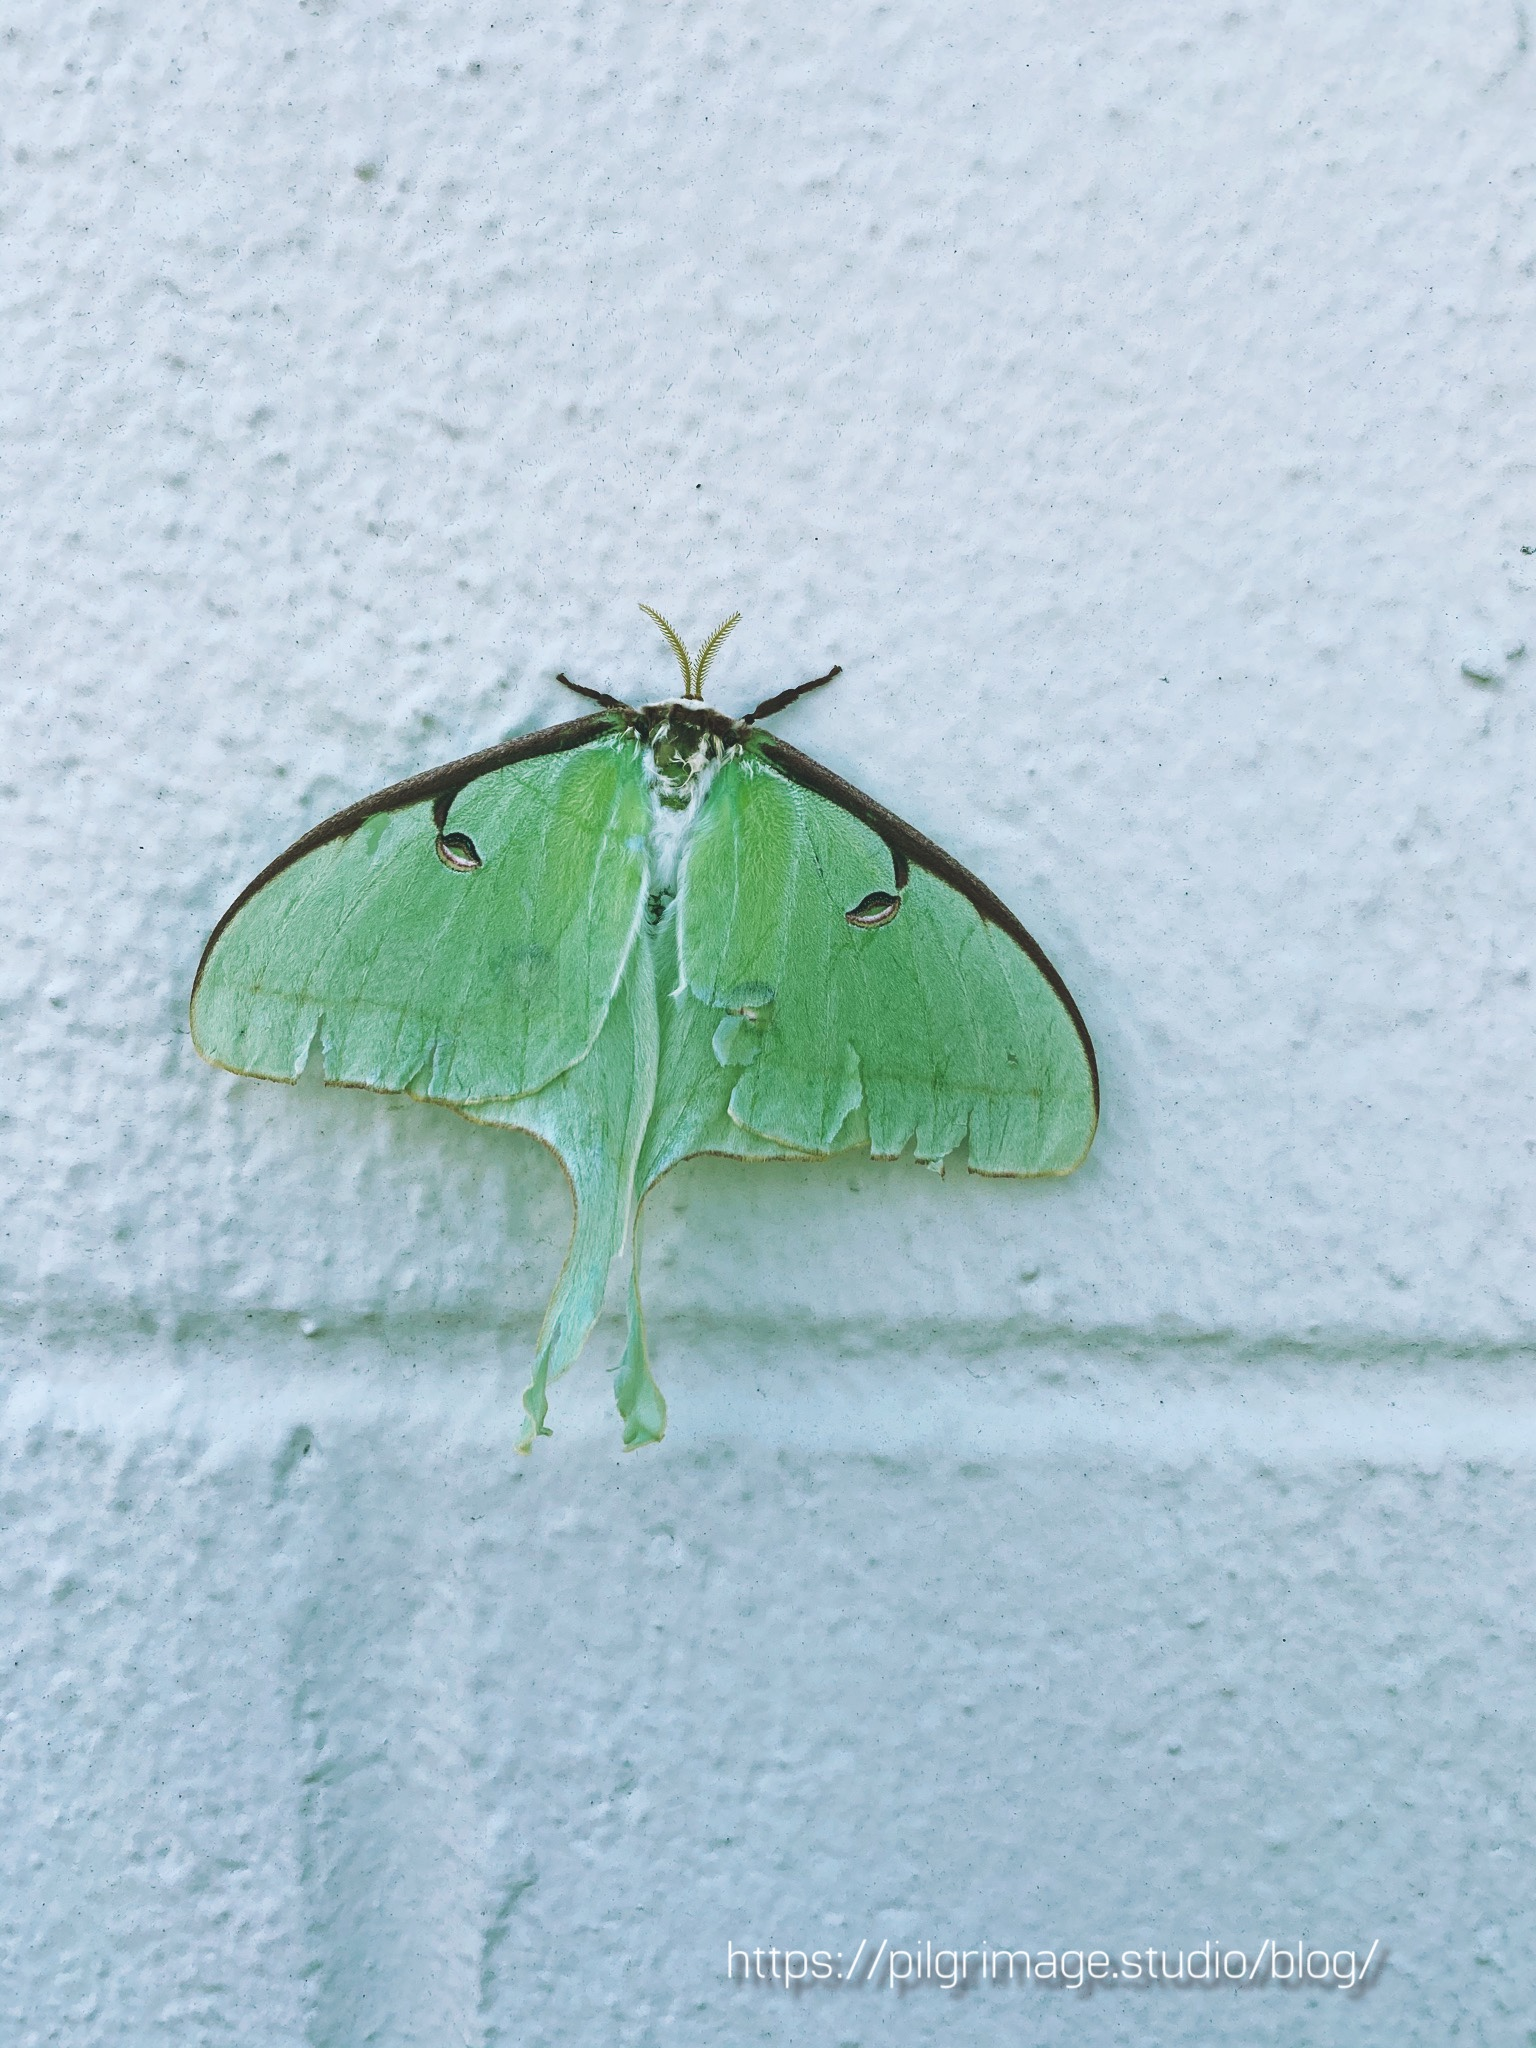 Large Luna moth